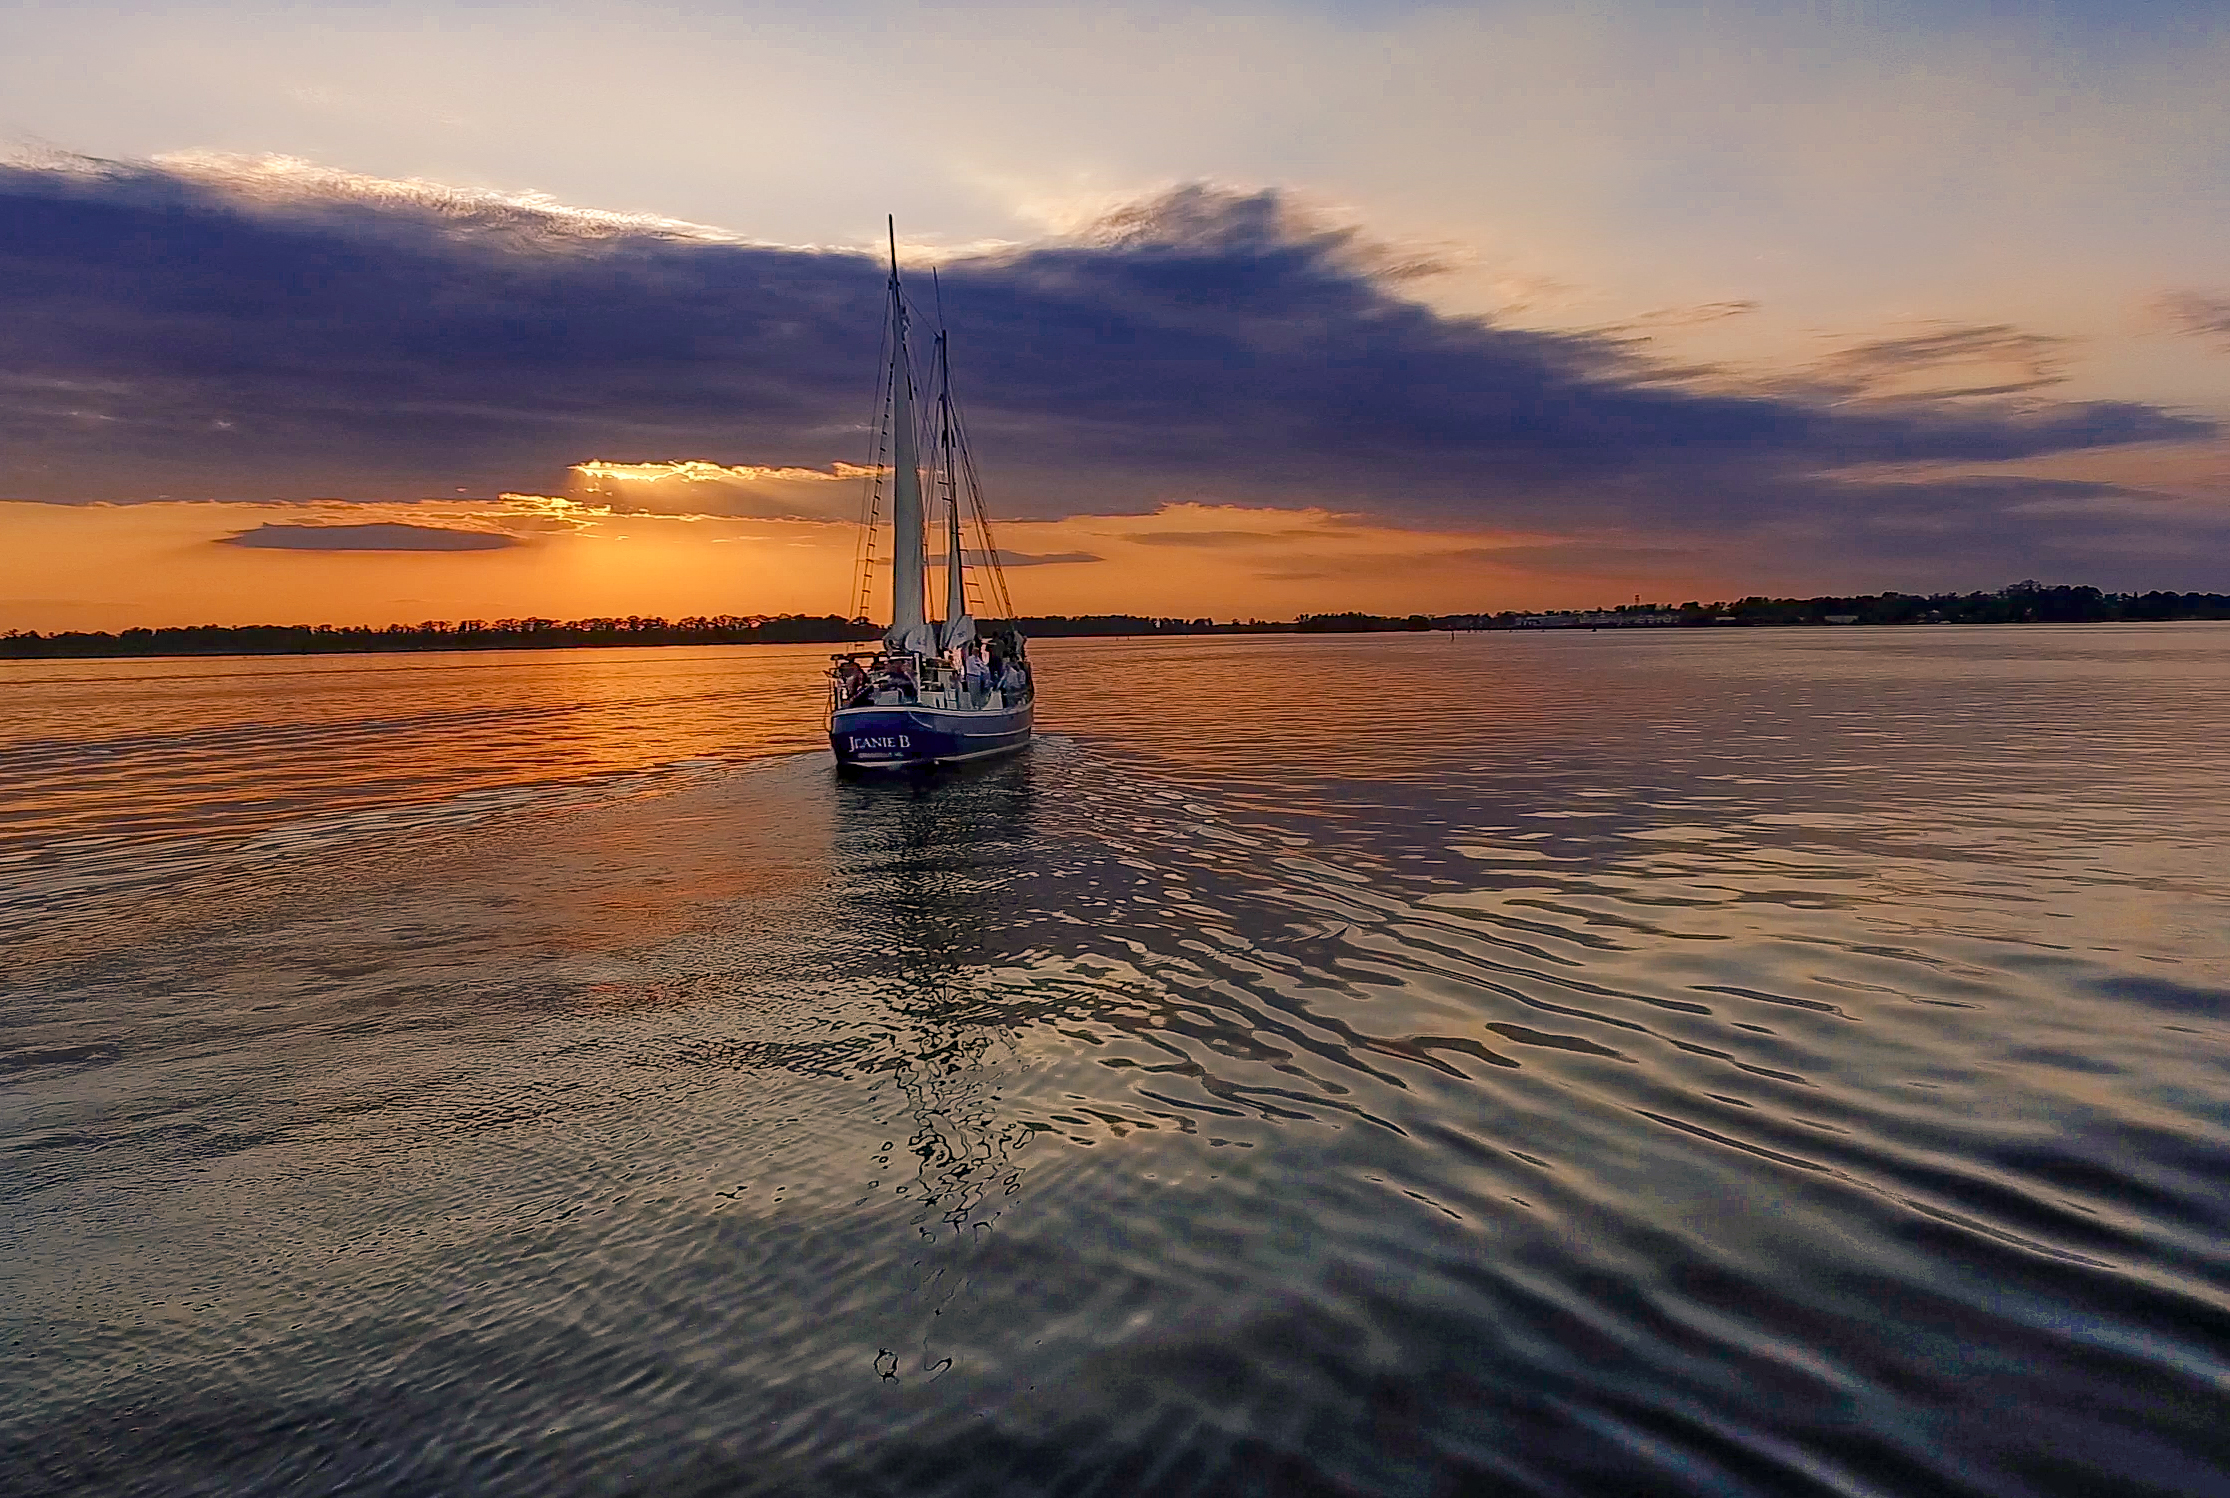 Sailing on the Pamlico River